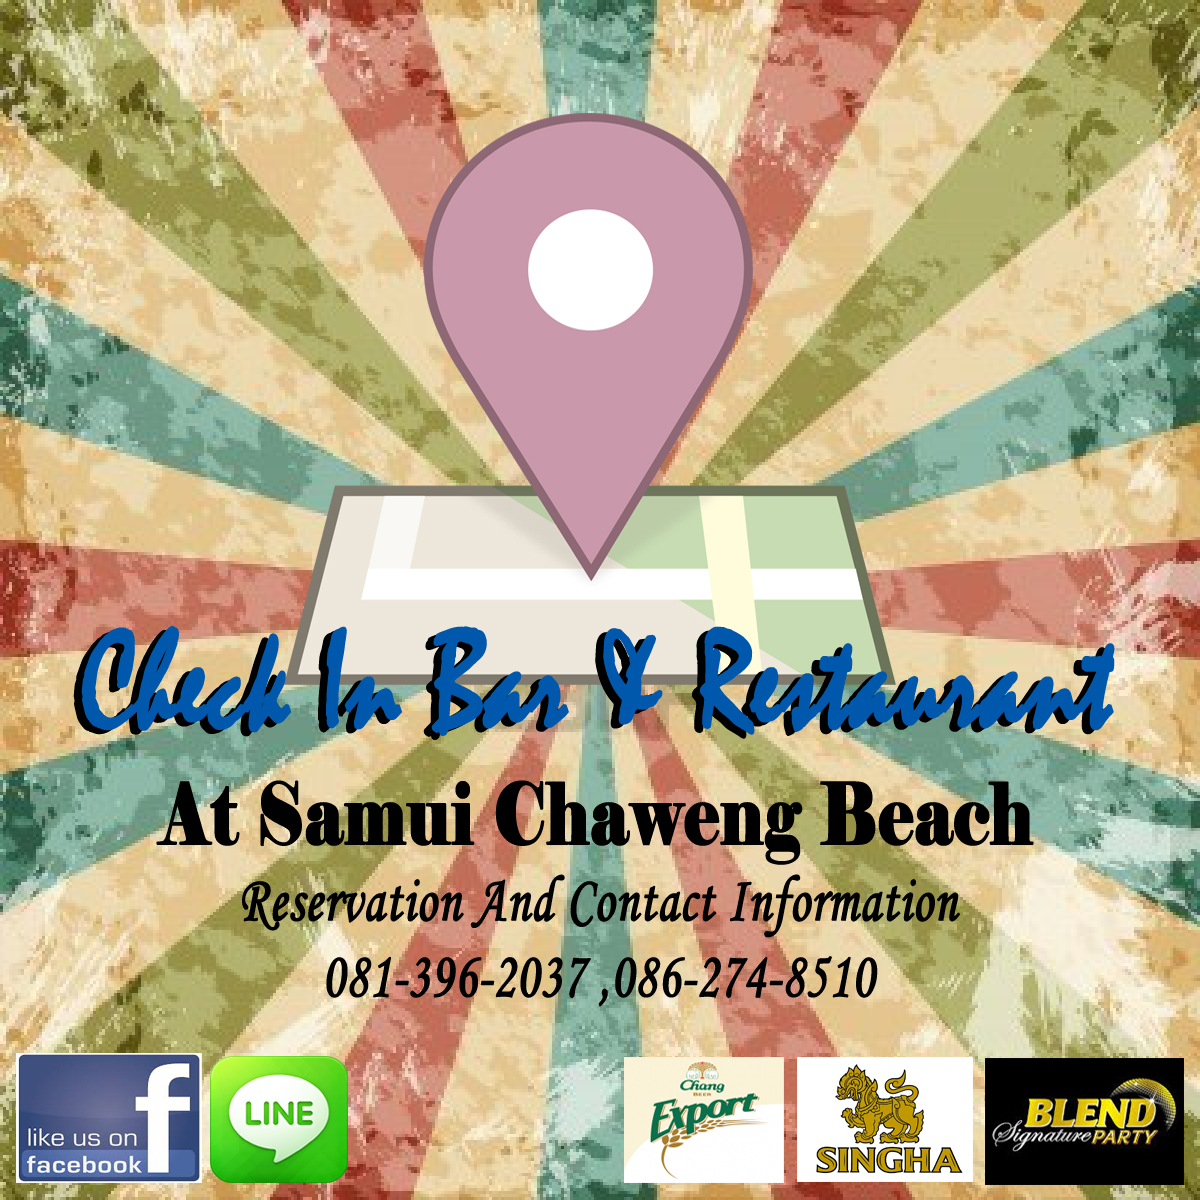 Check In Bar & Restaurant Samui Beach